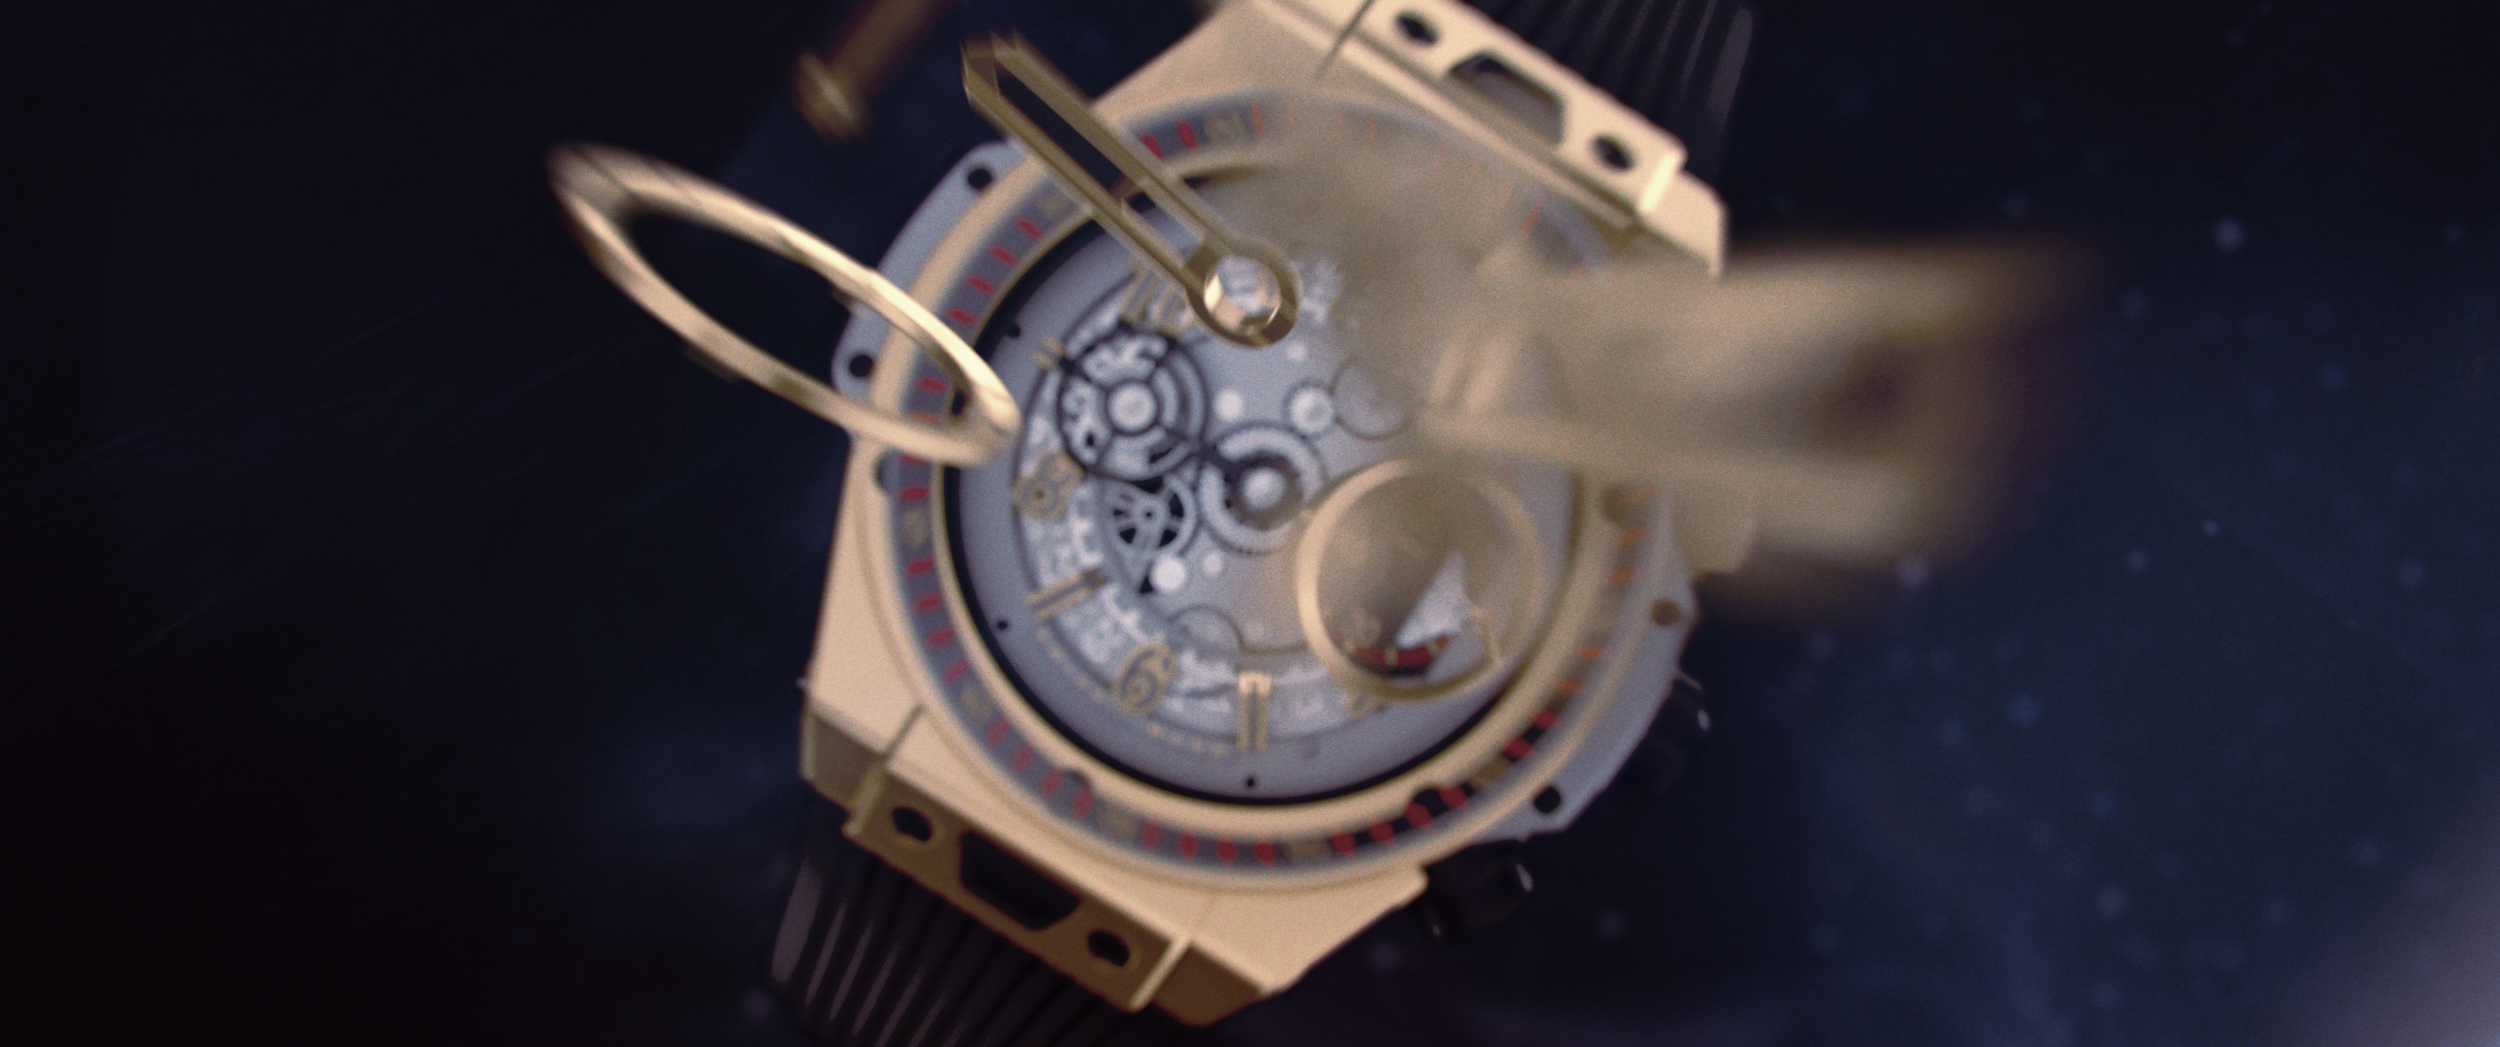 Hublot_Frame-17 copy.png